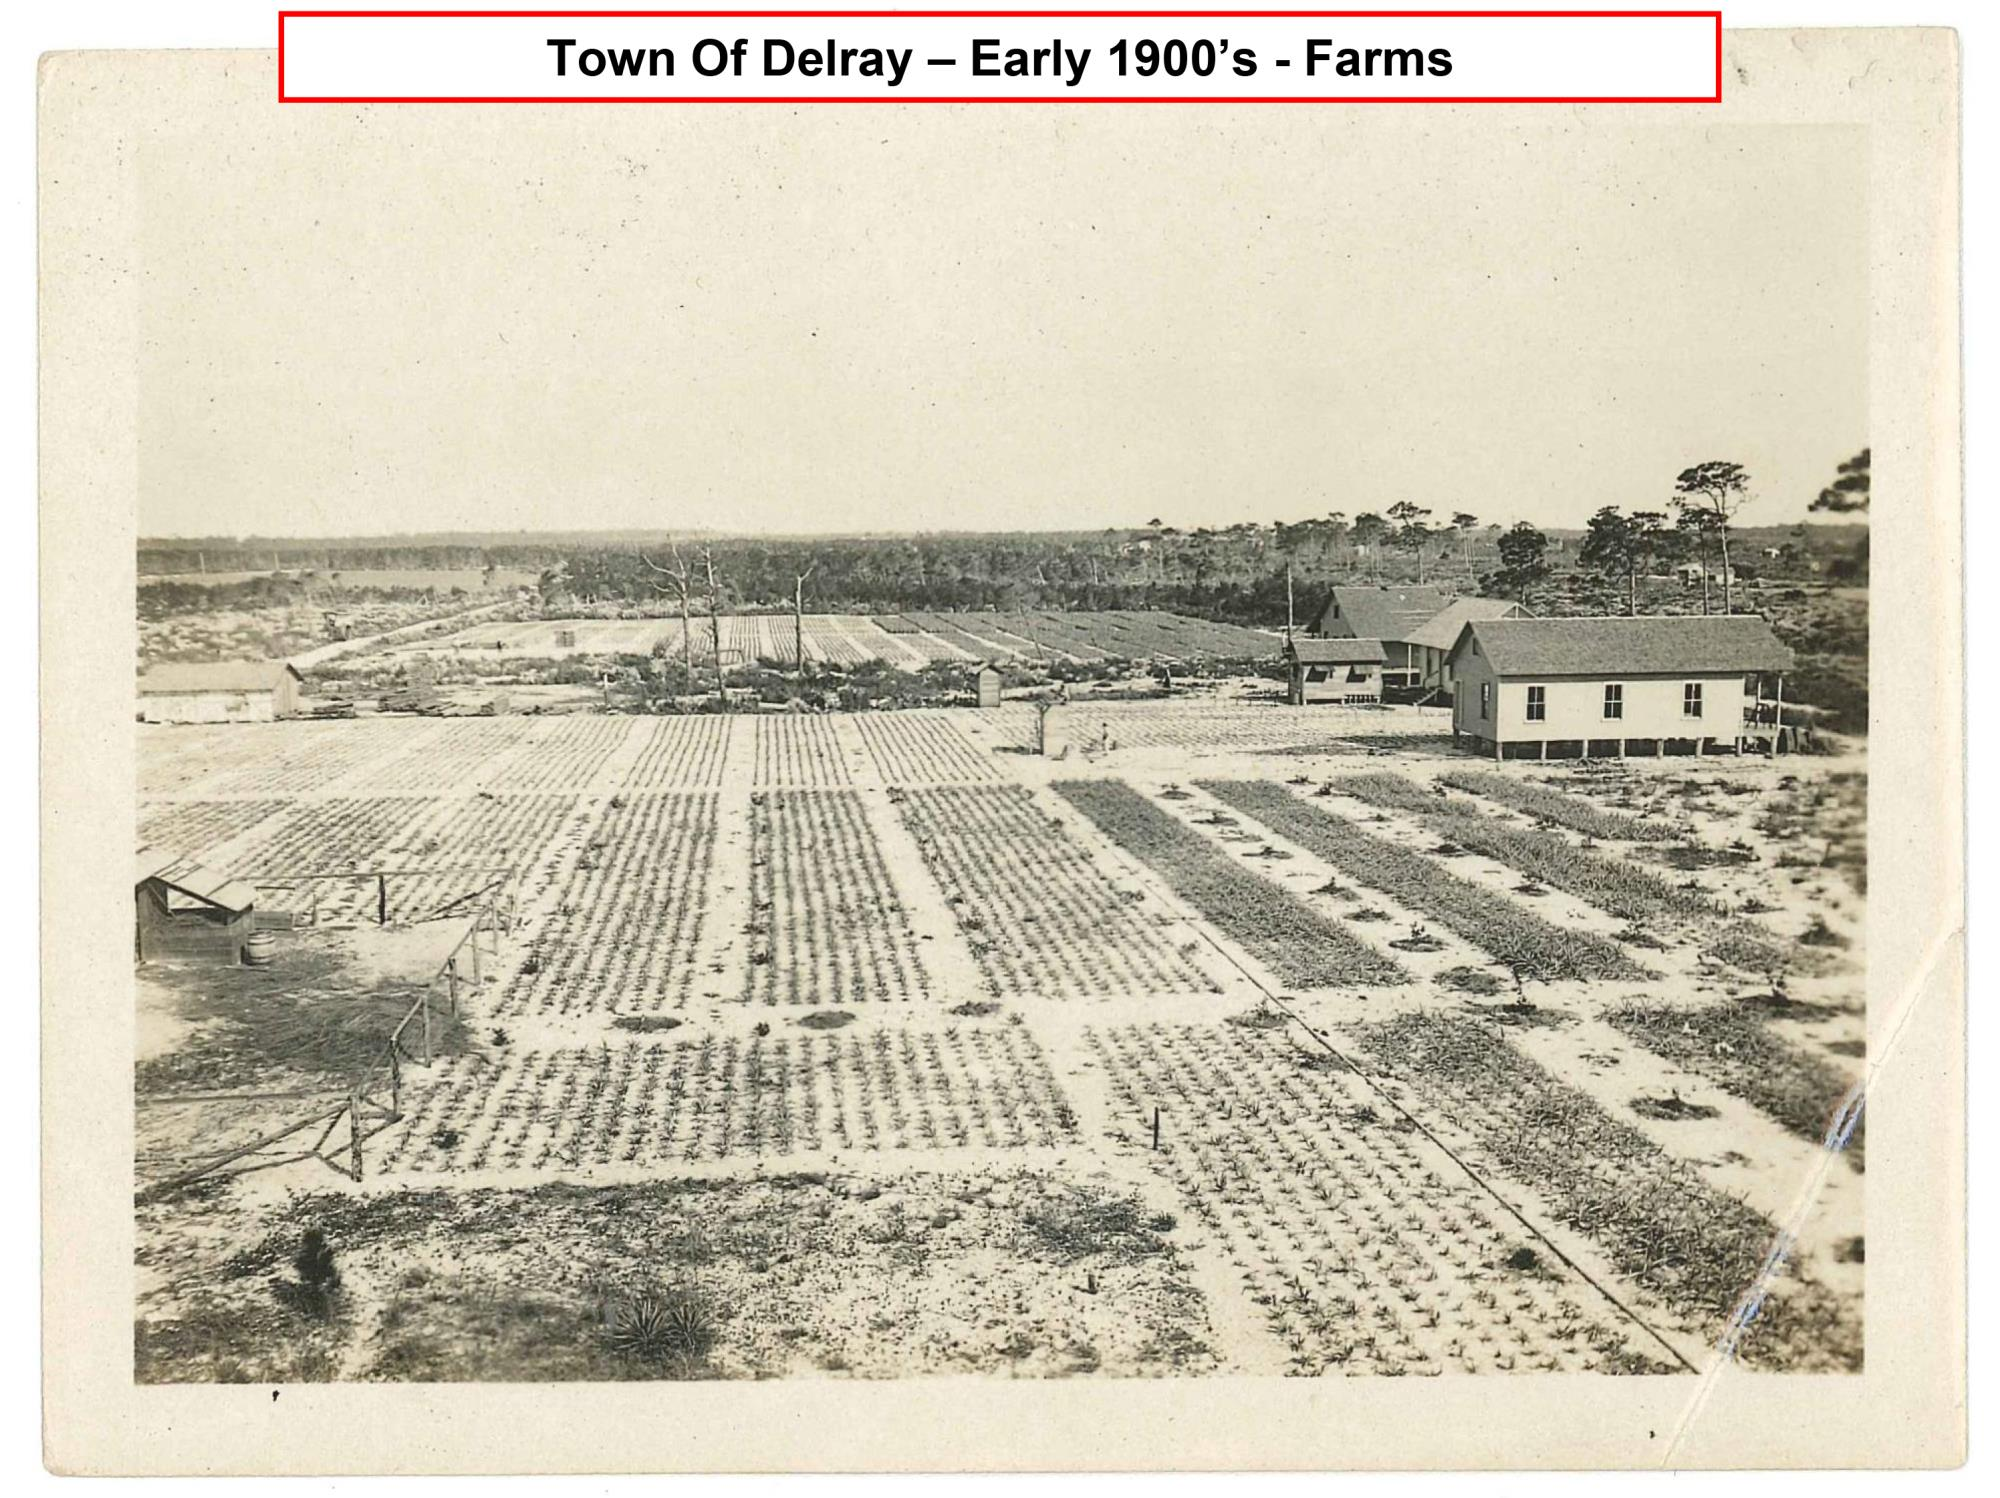 Town of Delray early 1900's farms